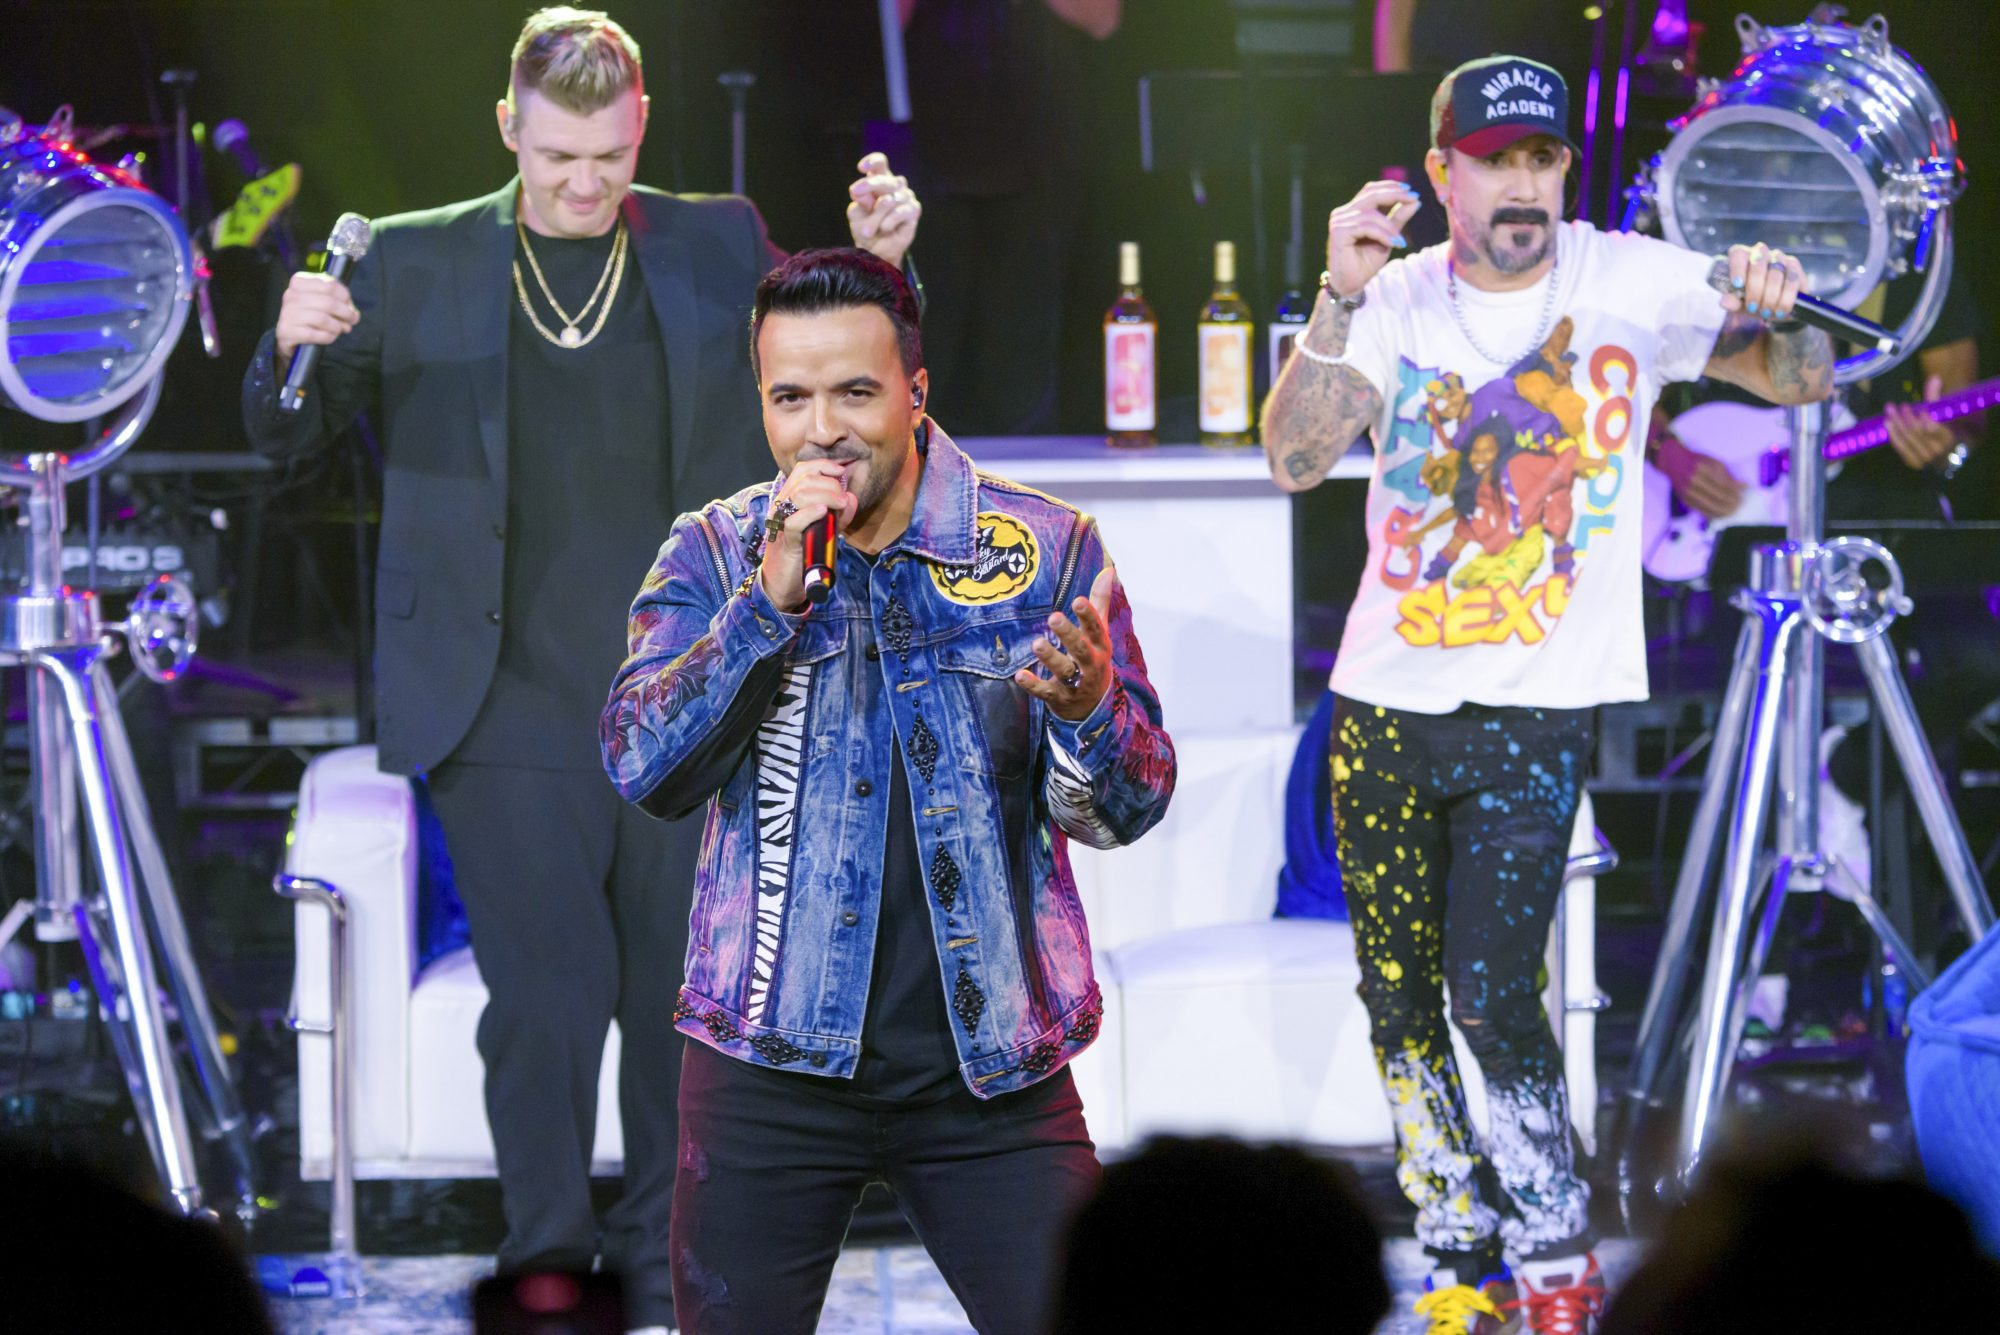 Luis Fonsi Joins Backstreet Boys for The After Party at The Venetian Resort Las Vegas